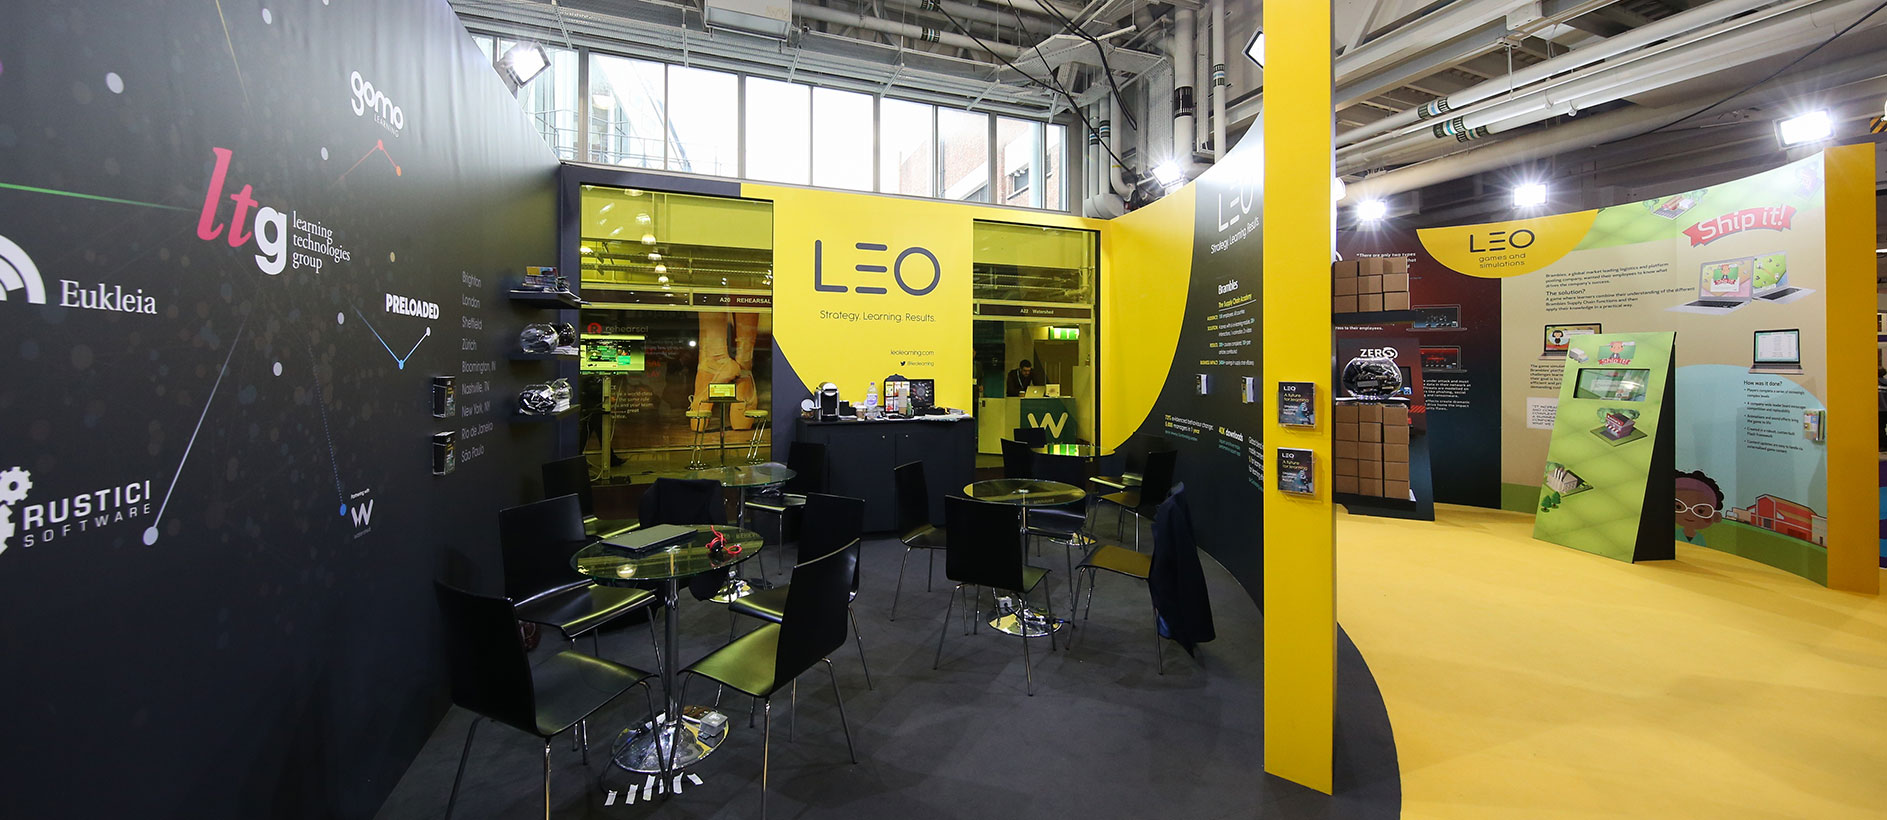 event furniture for Leo Learning